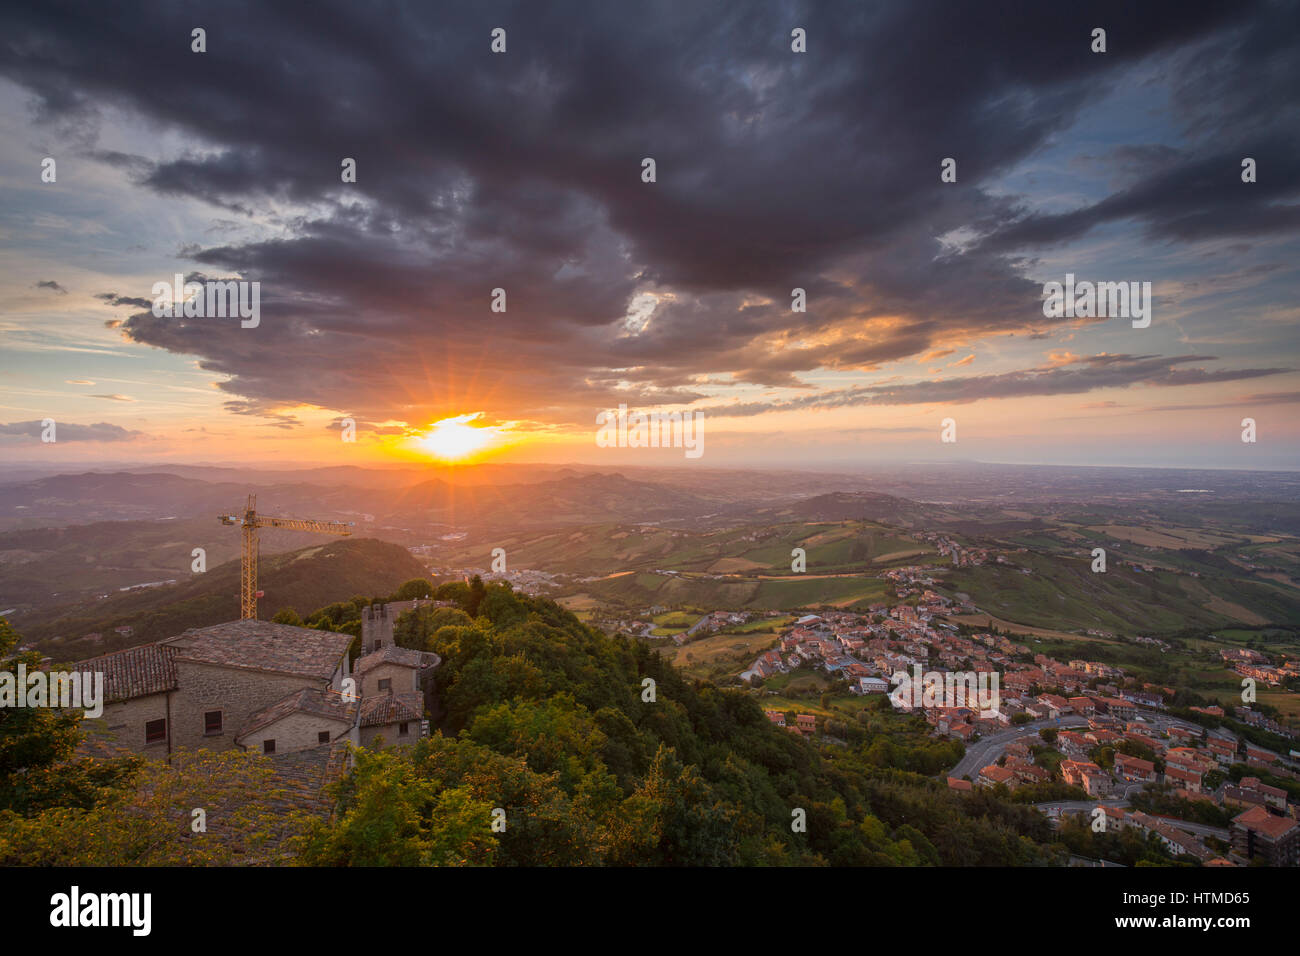 San Marino, View from the Monte Titano during sunset - Stock Image